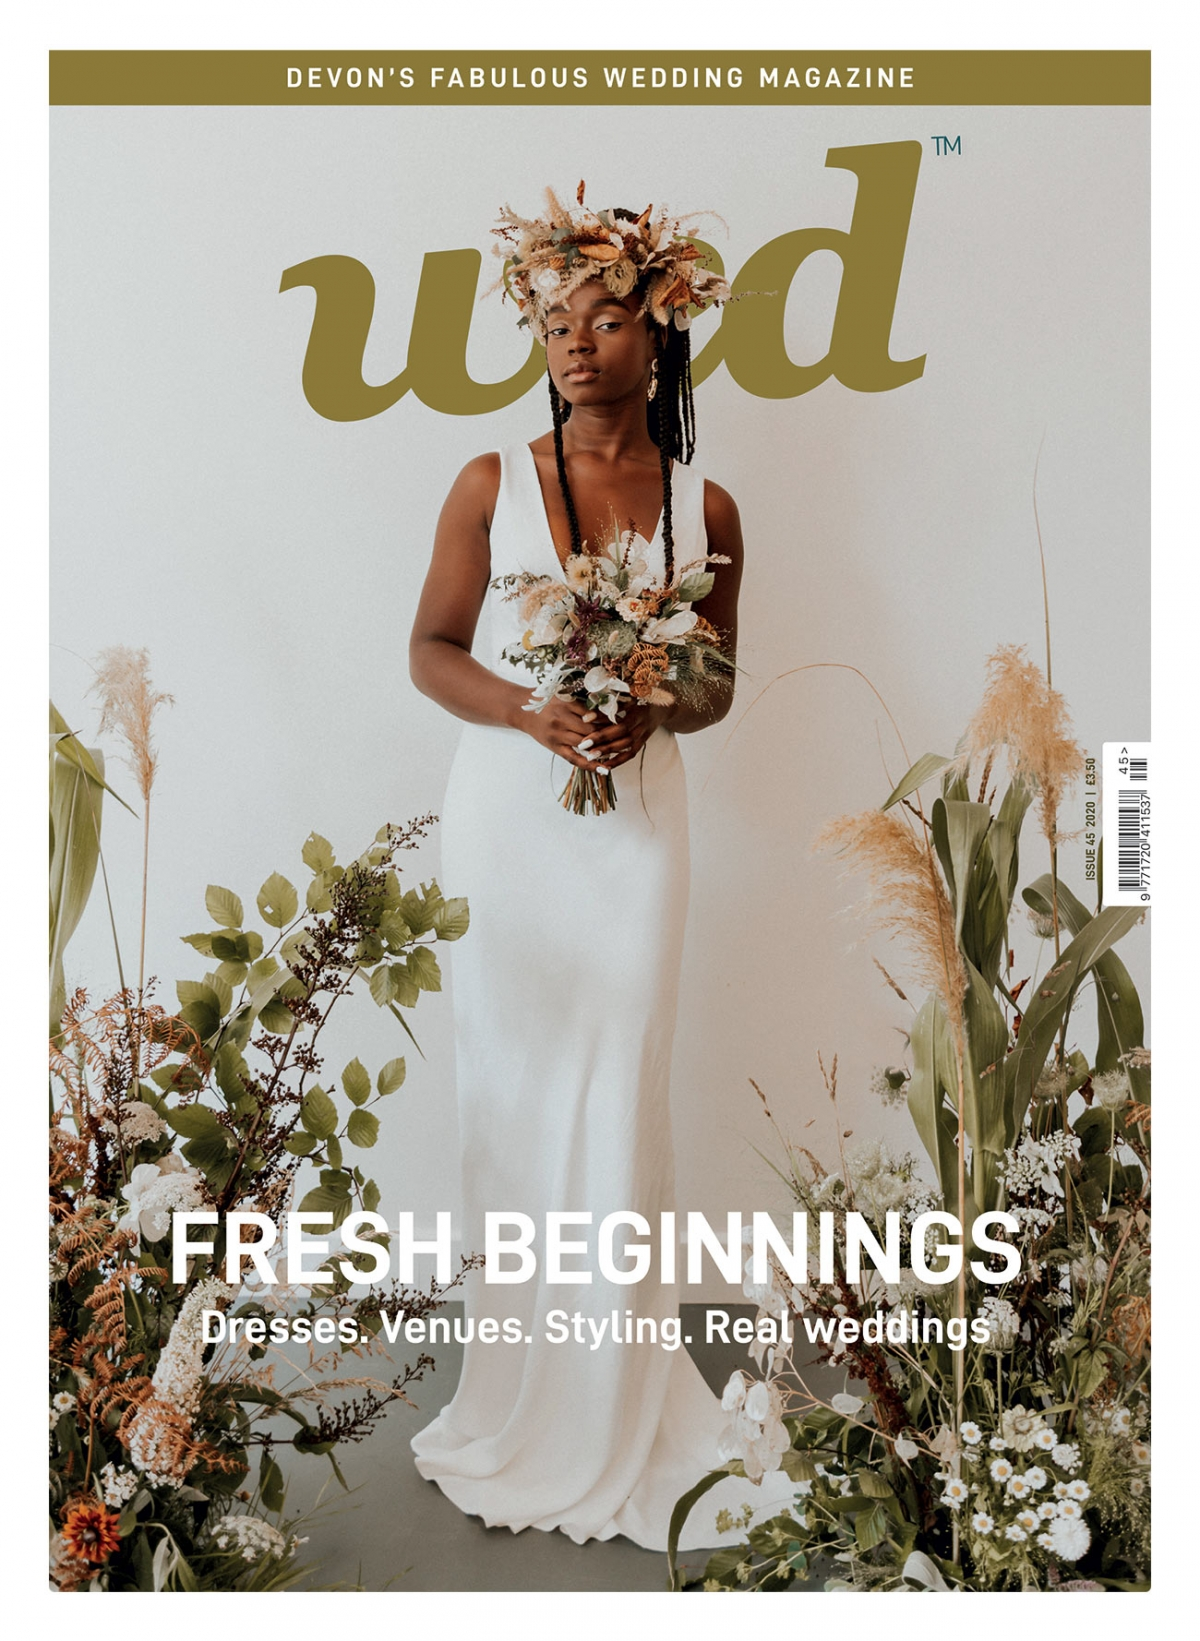 Order a print copy of Devon Wed Magazine - Issue 45